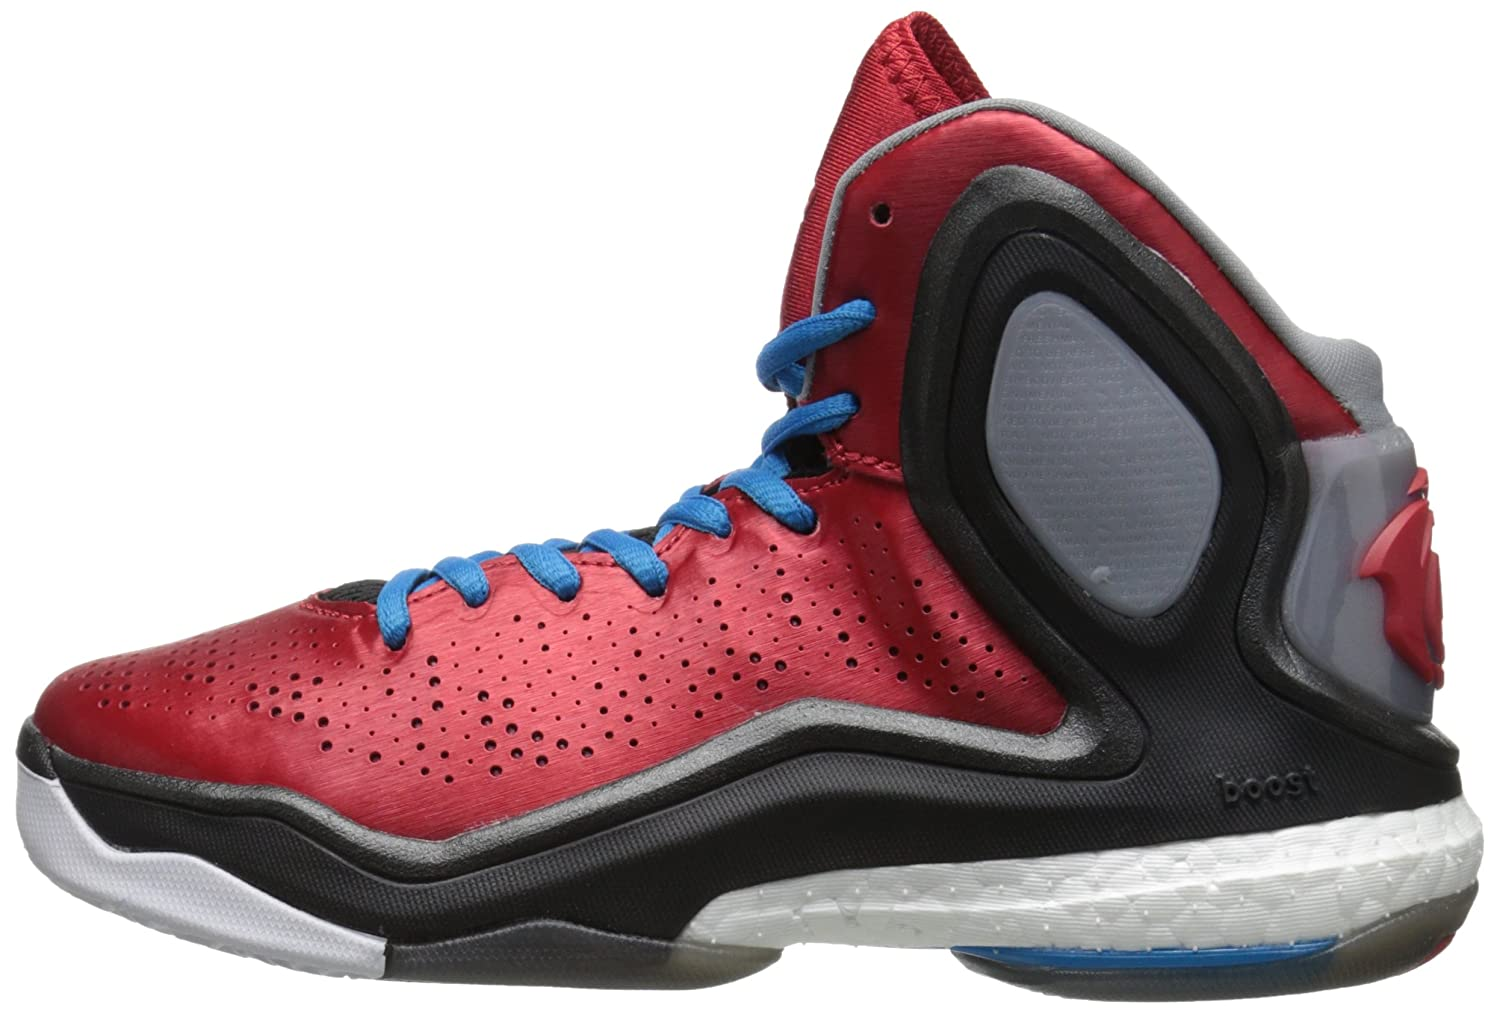 adidas rose basketball shoes